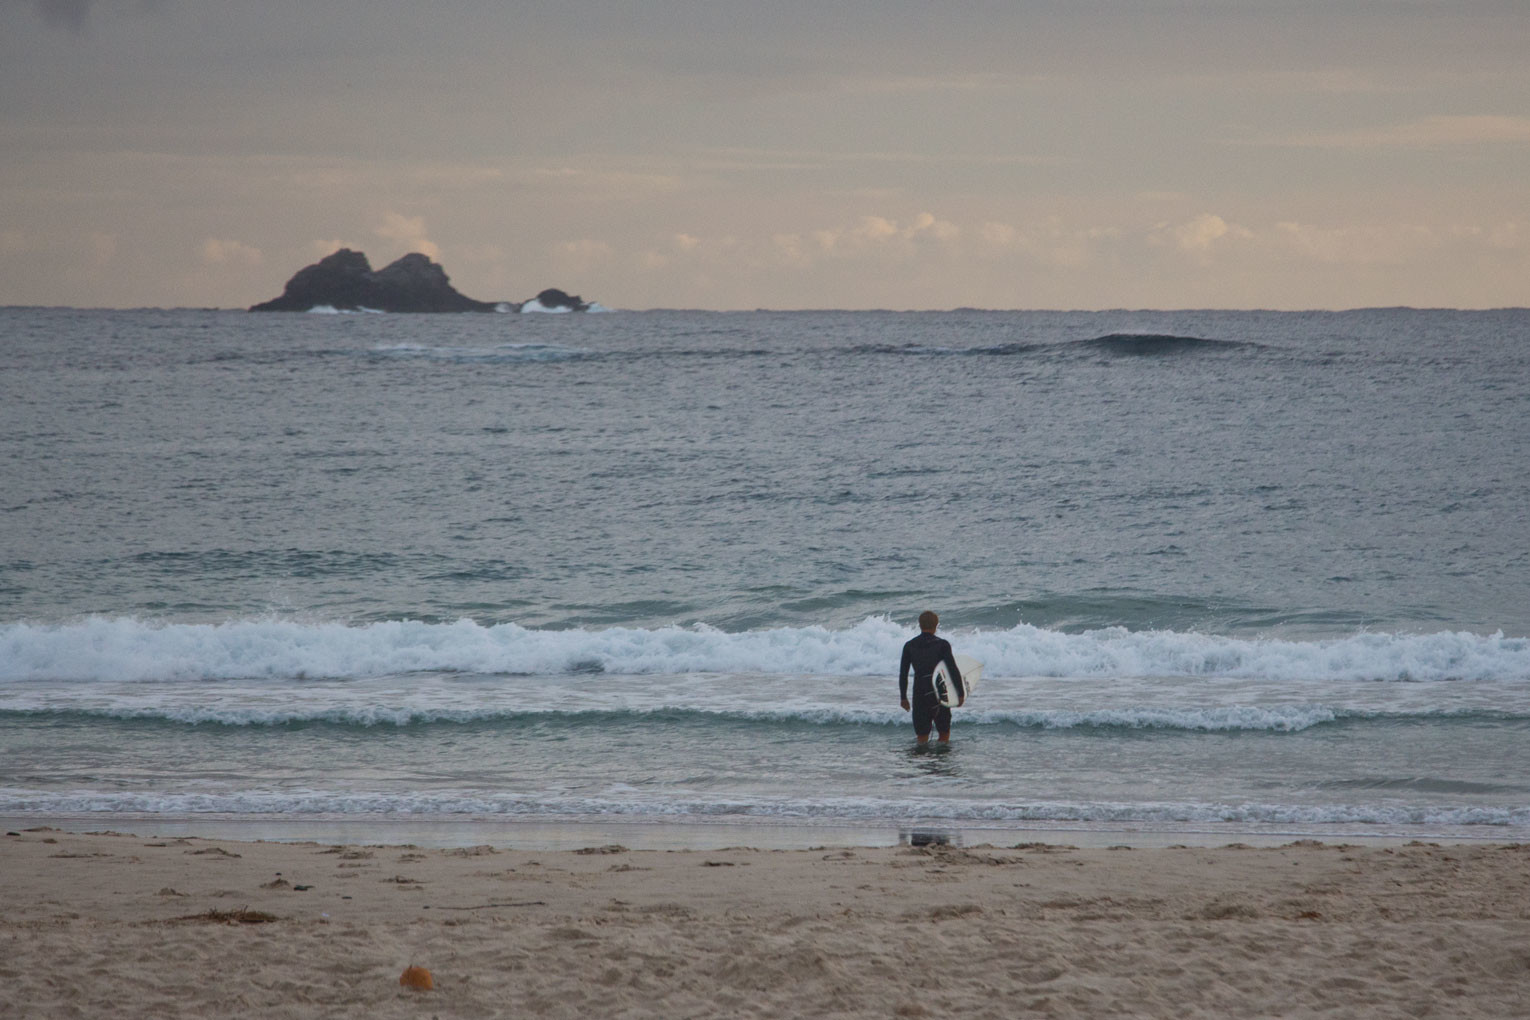 Surfen Sehnsucht nach Sommer – Byron Bay am Morgen | SOMEWHERE ELSE